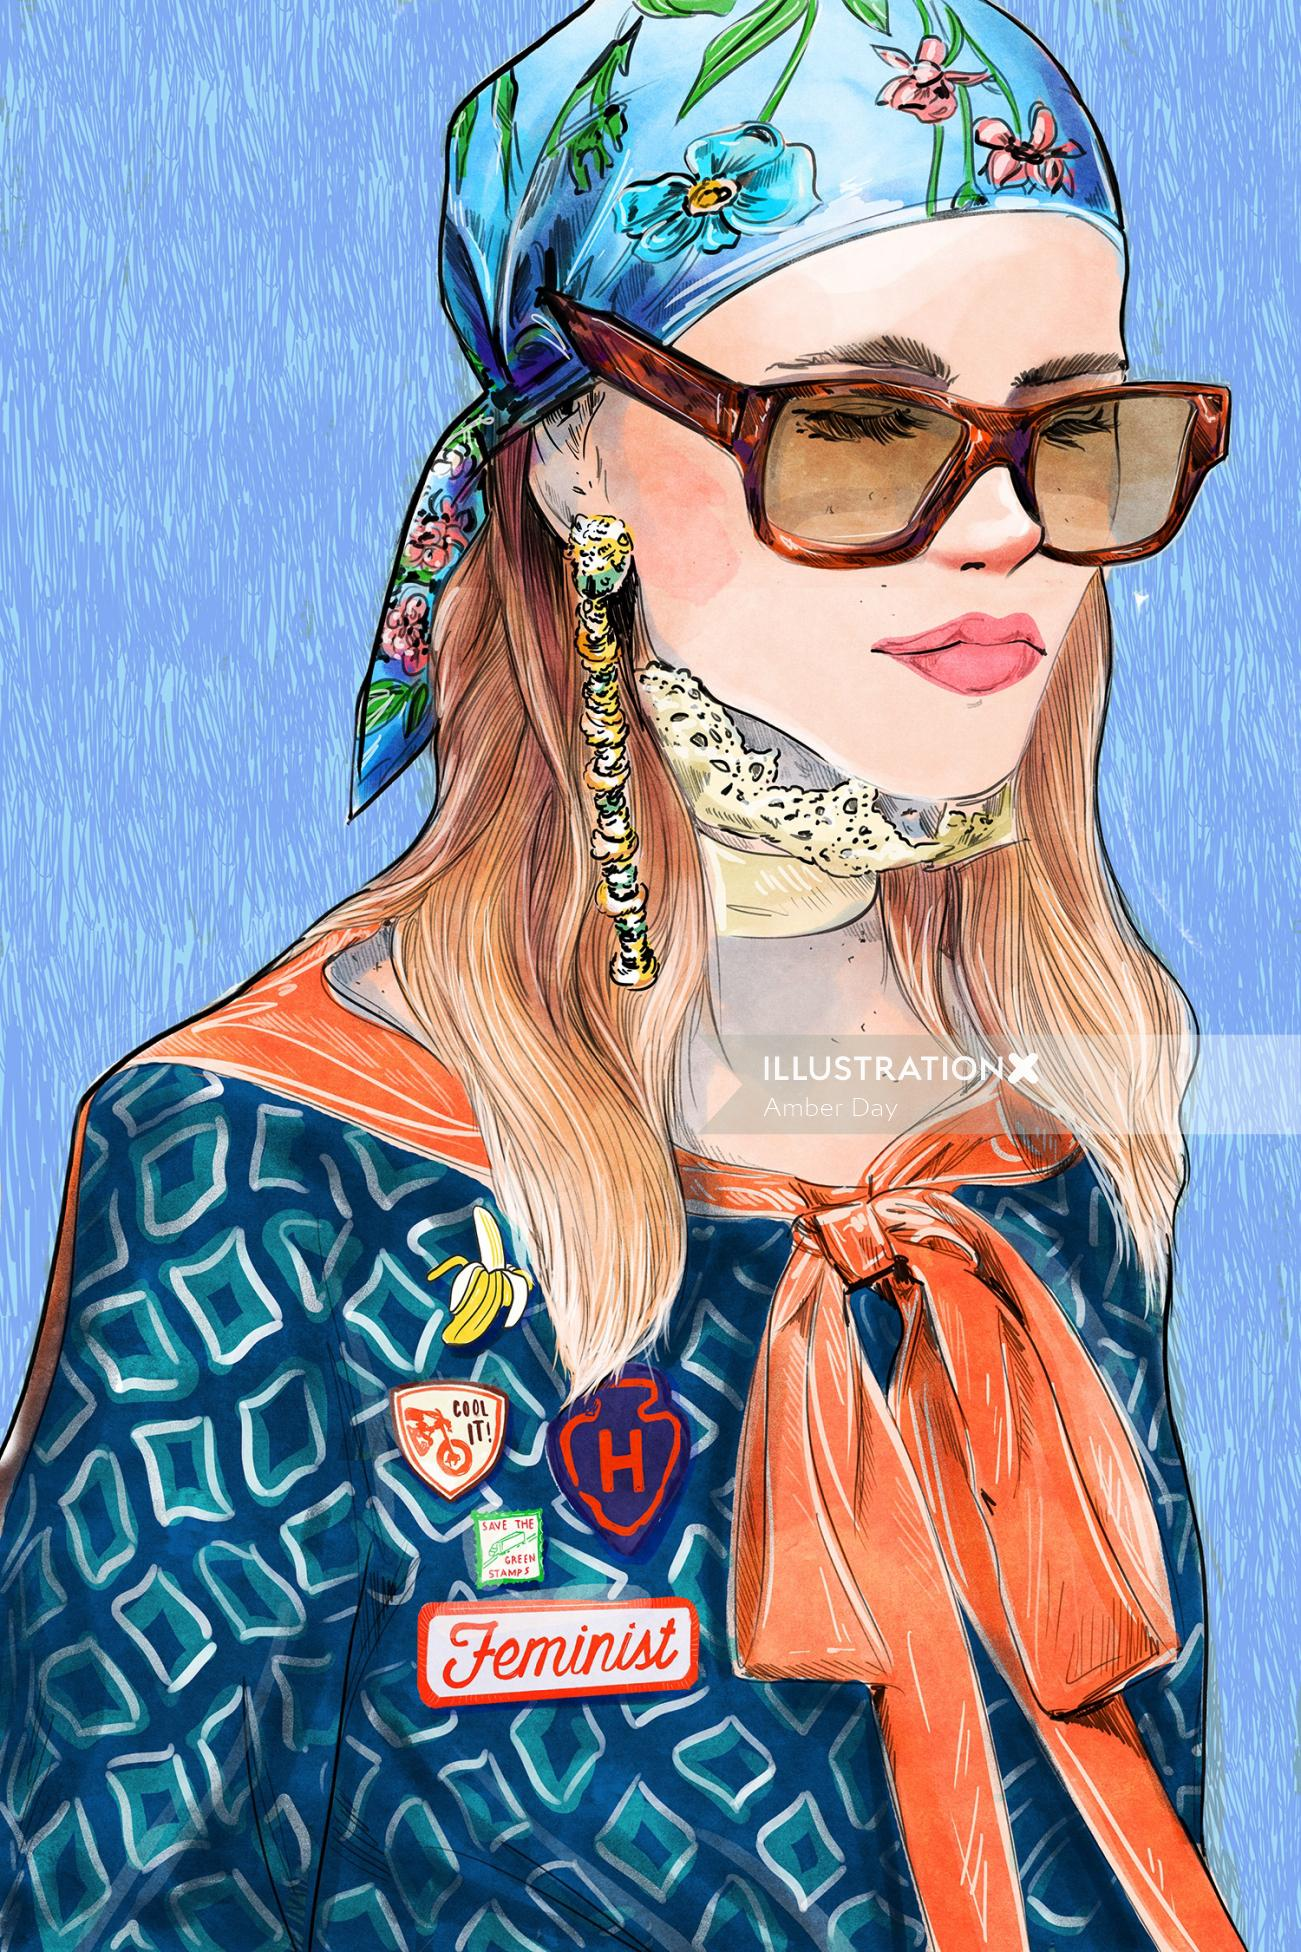 high fashion, runway, feminist, millennial, patches, scarf, eyewear, glasses, accessories, pins, bri